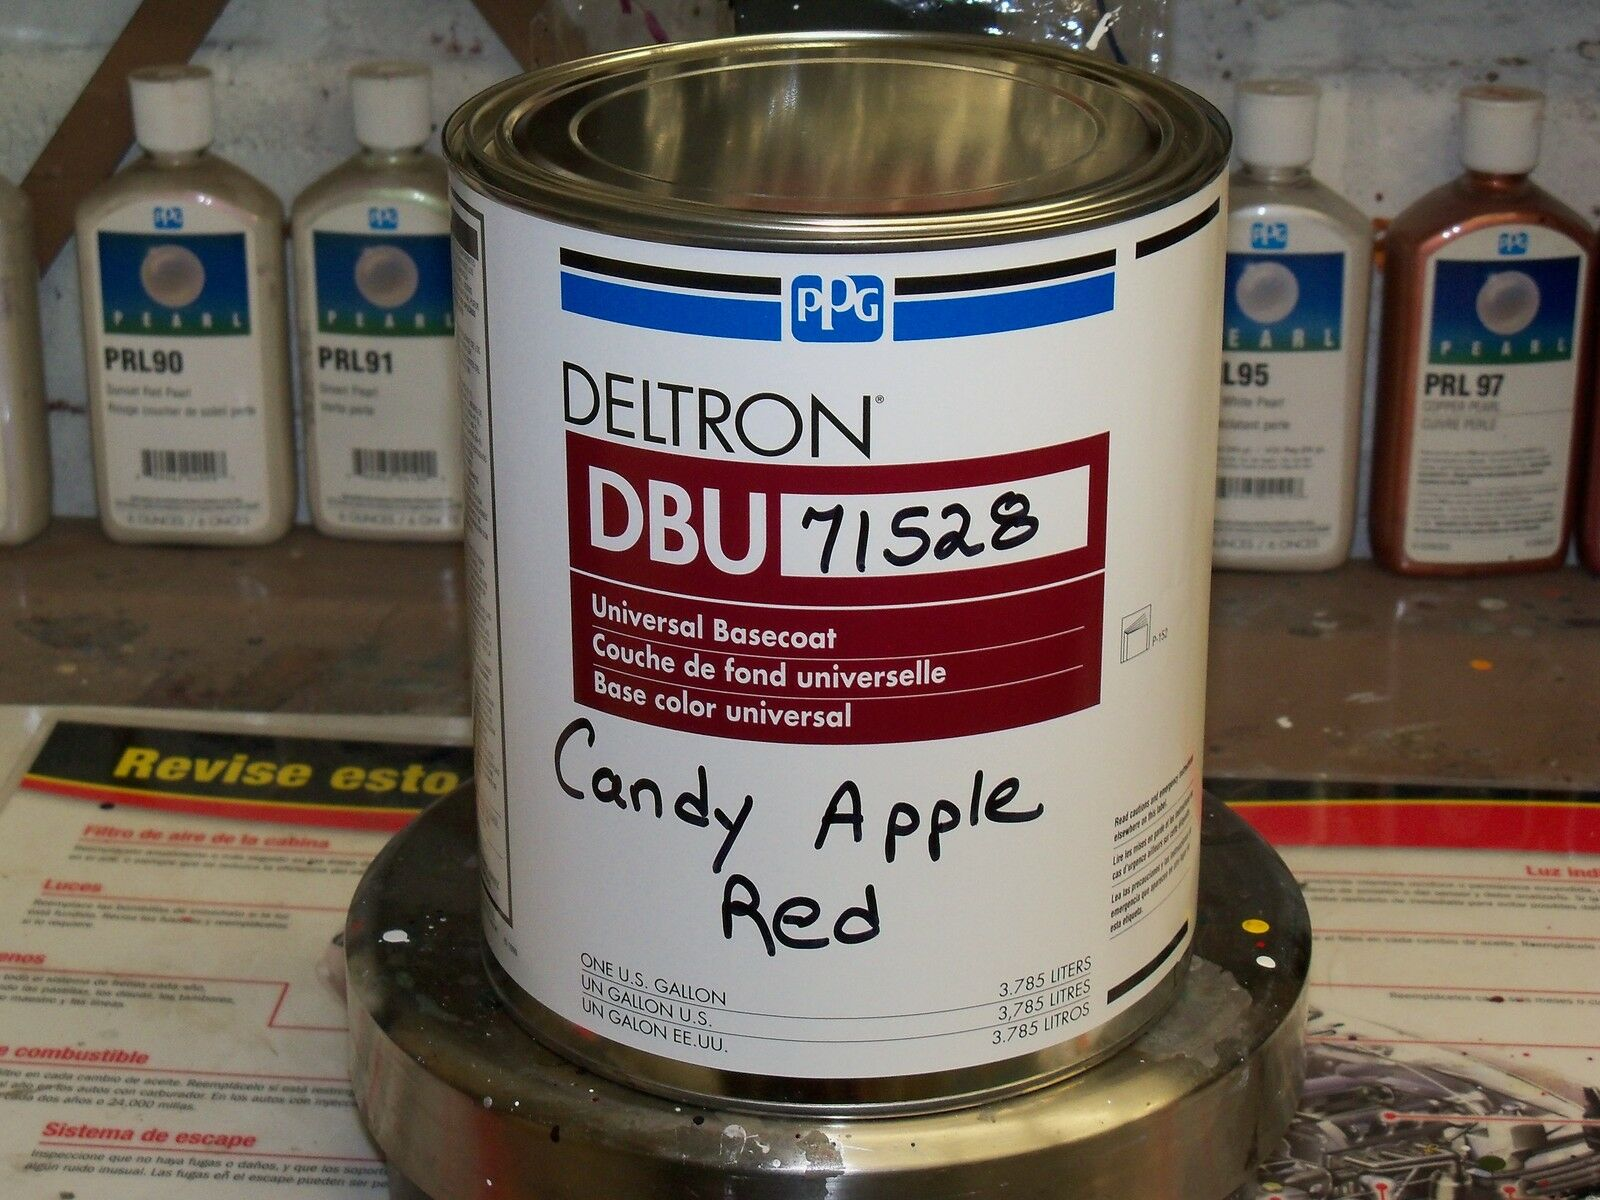 Ppg Deltron Dbu71528 Candy Apple Red Ford Code T 2e Ford Mustang Lincoln Mercury New For Sale